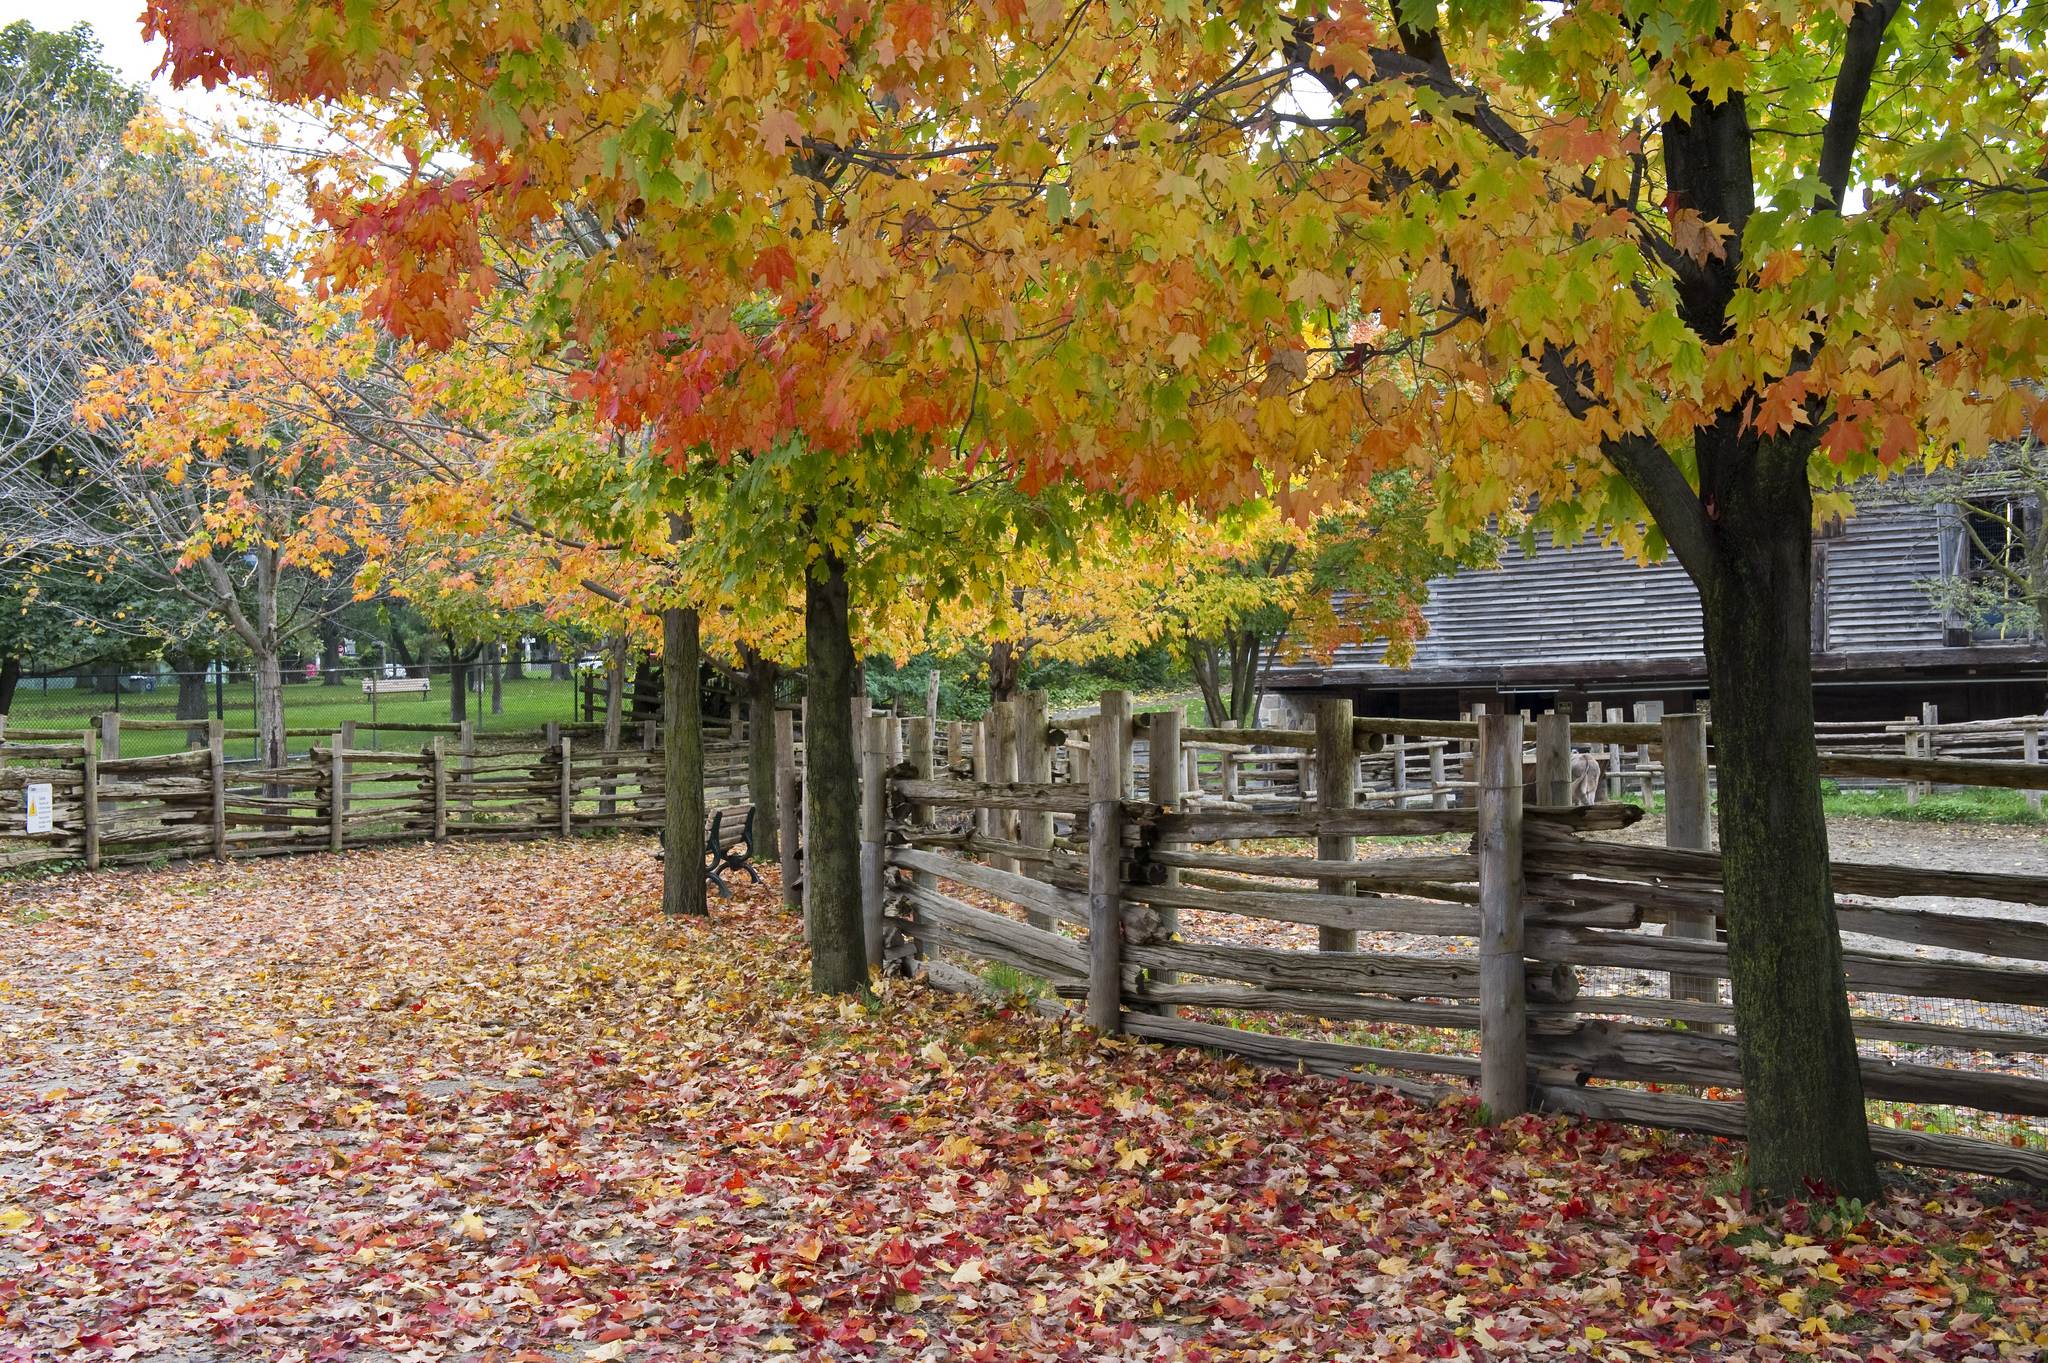 Another image of nature, this one of Riverdale Farm.